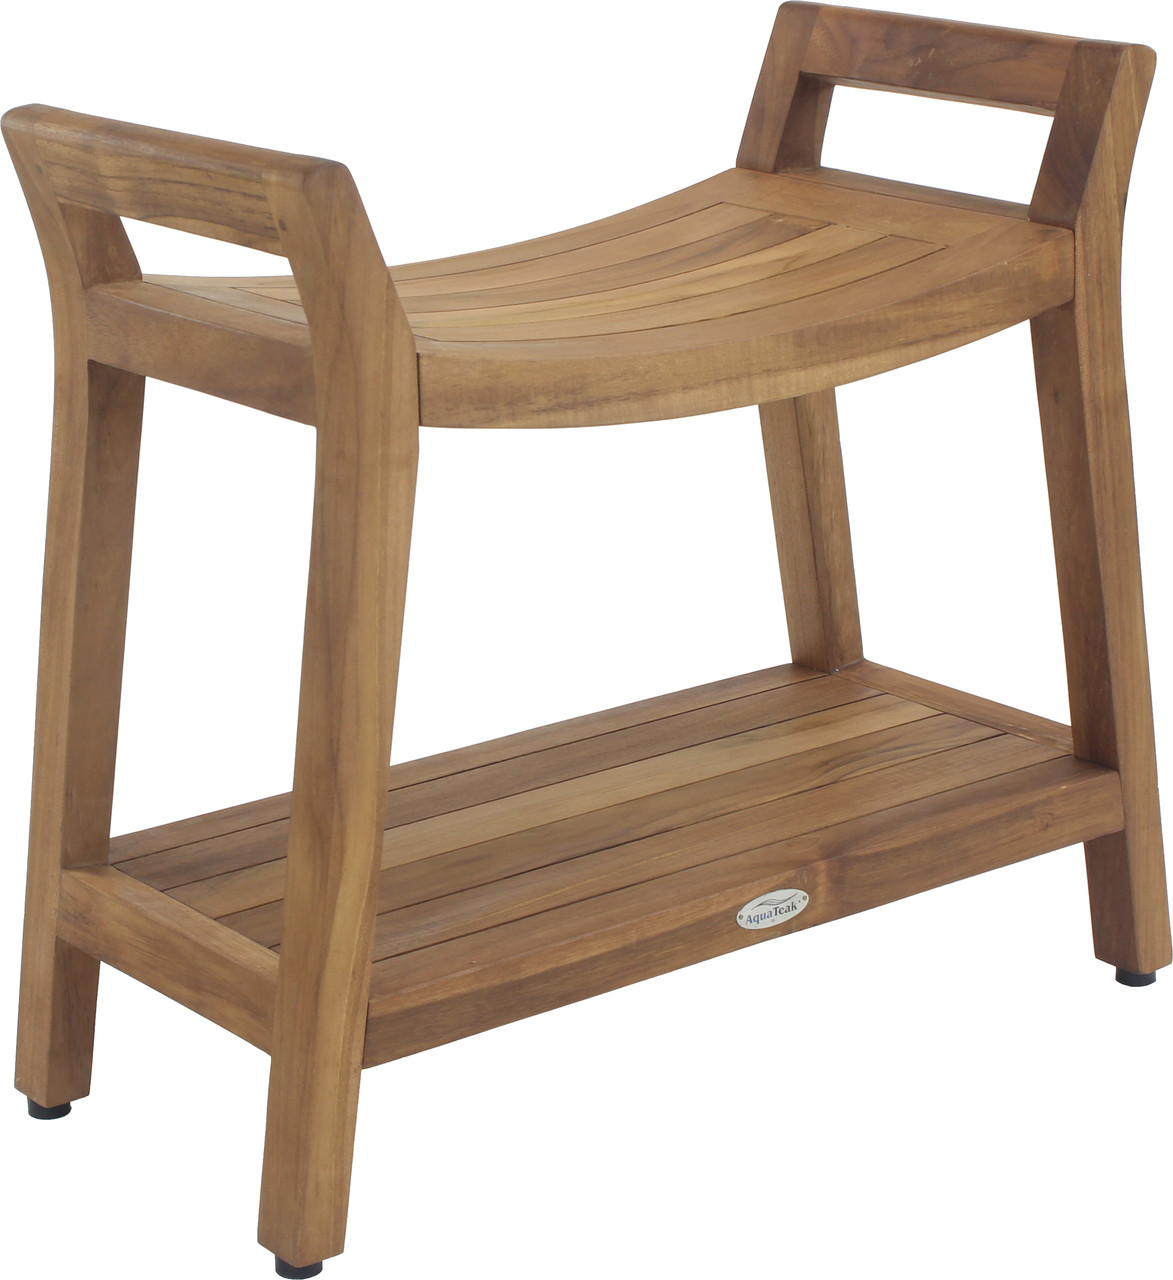 Teak Shower Bench | Teak Bath Stools | Teak Bath Bench - Aqua Teak